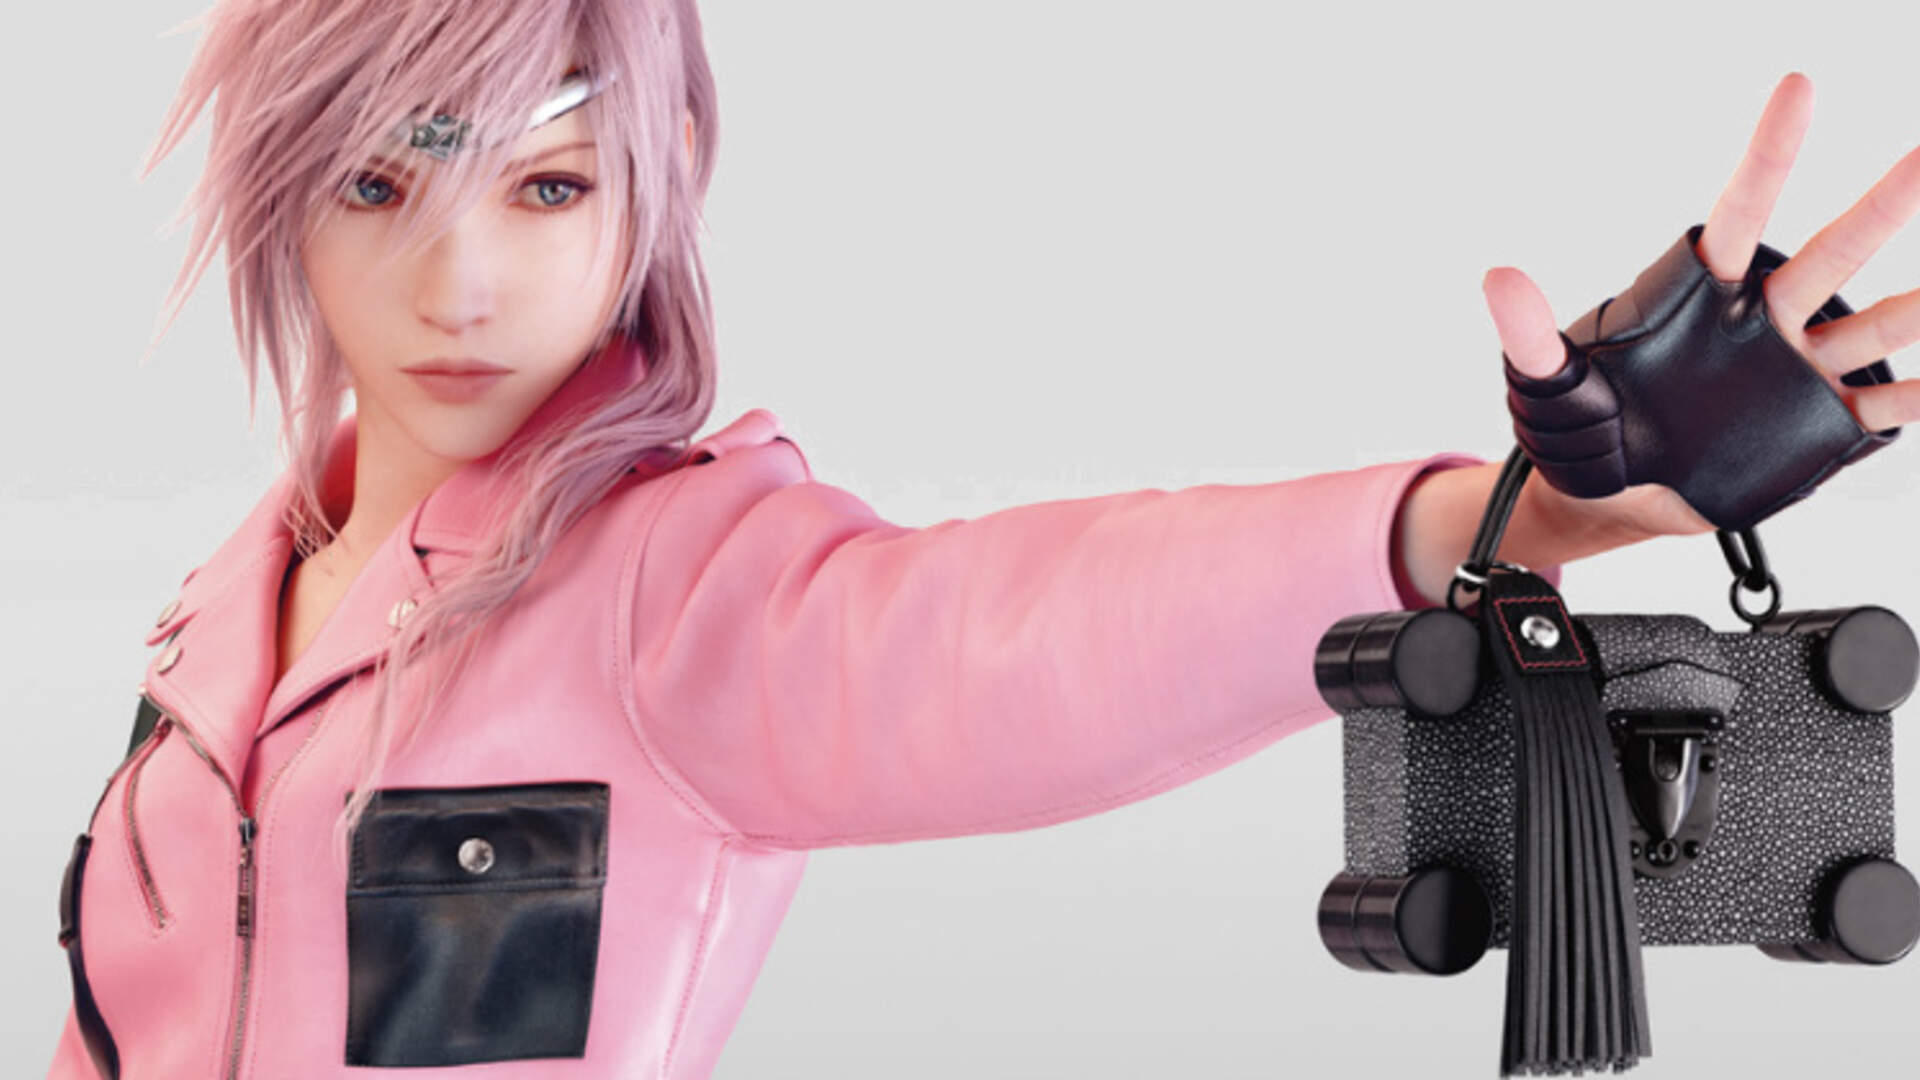 FFXIII's Lightning & Louis Vuitton: In-Character Endorsements We'd Like to See